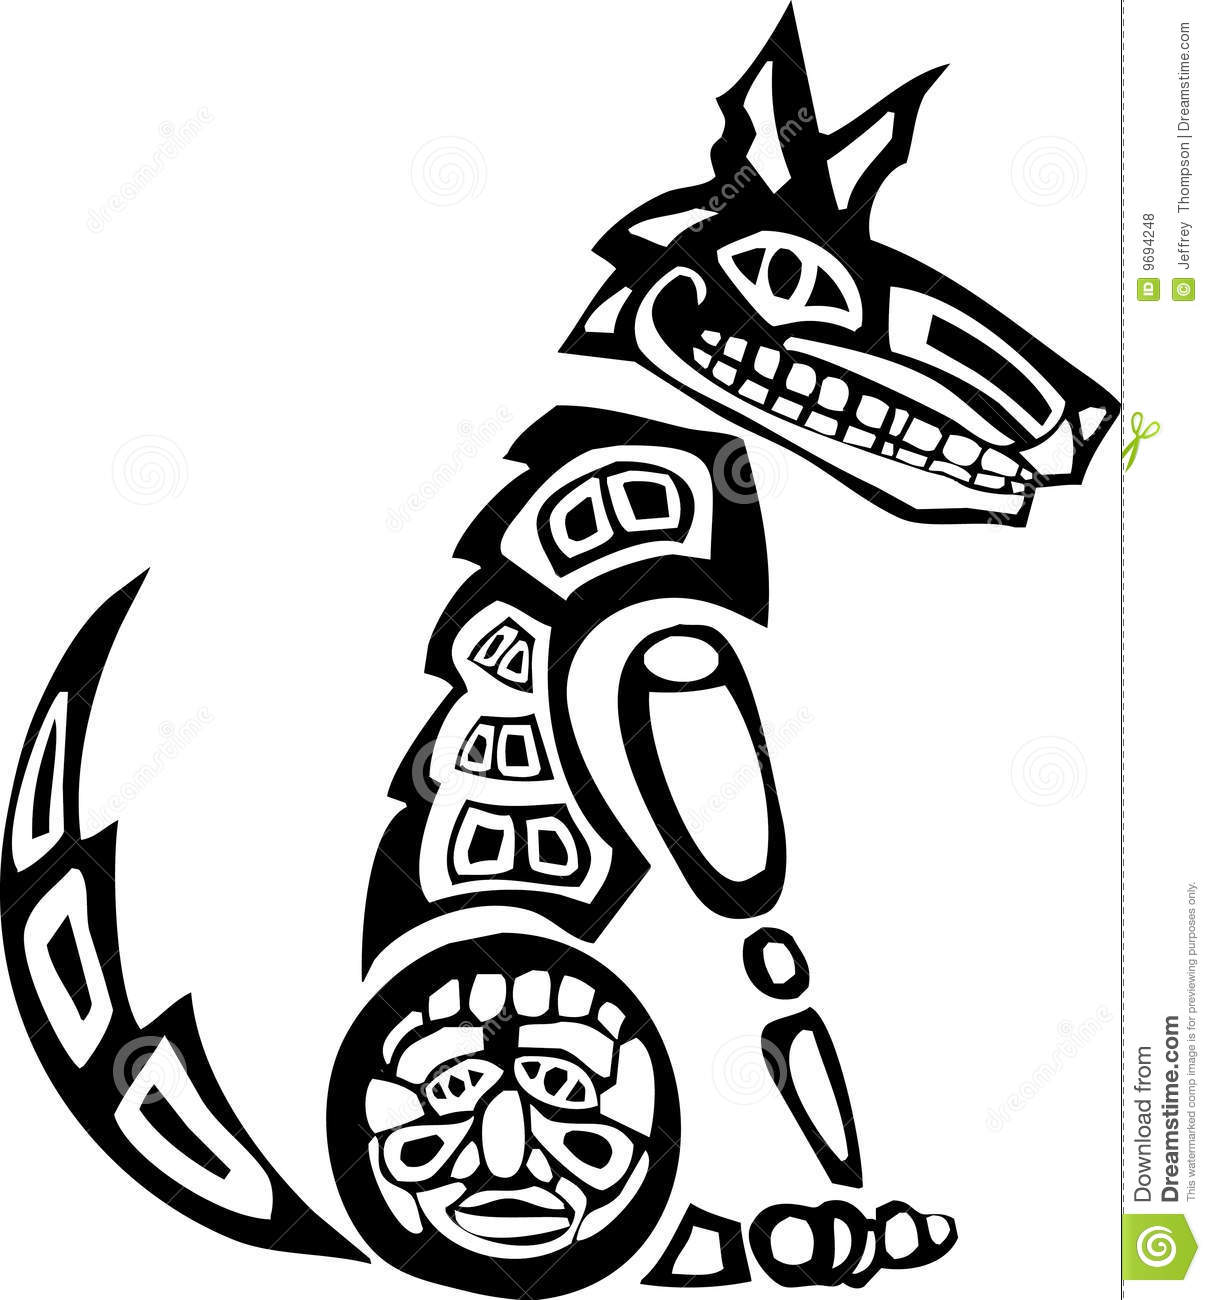 Totem pole clipart black and white lion graphic black and white Totem Drawing   Free download best Totem Drawing on ... graphic black and white